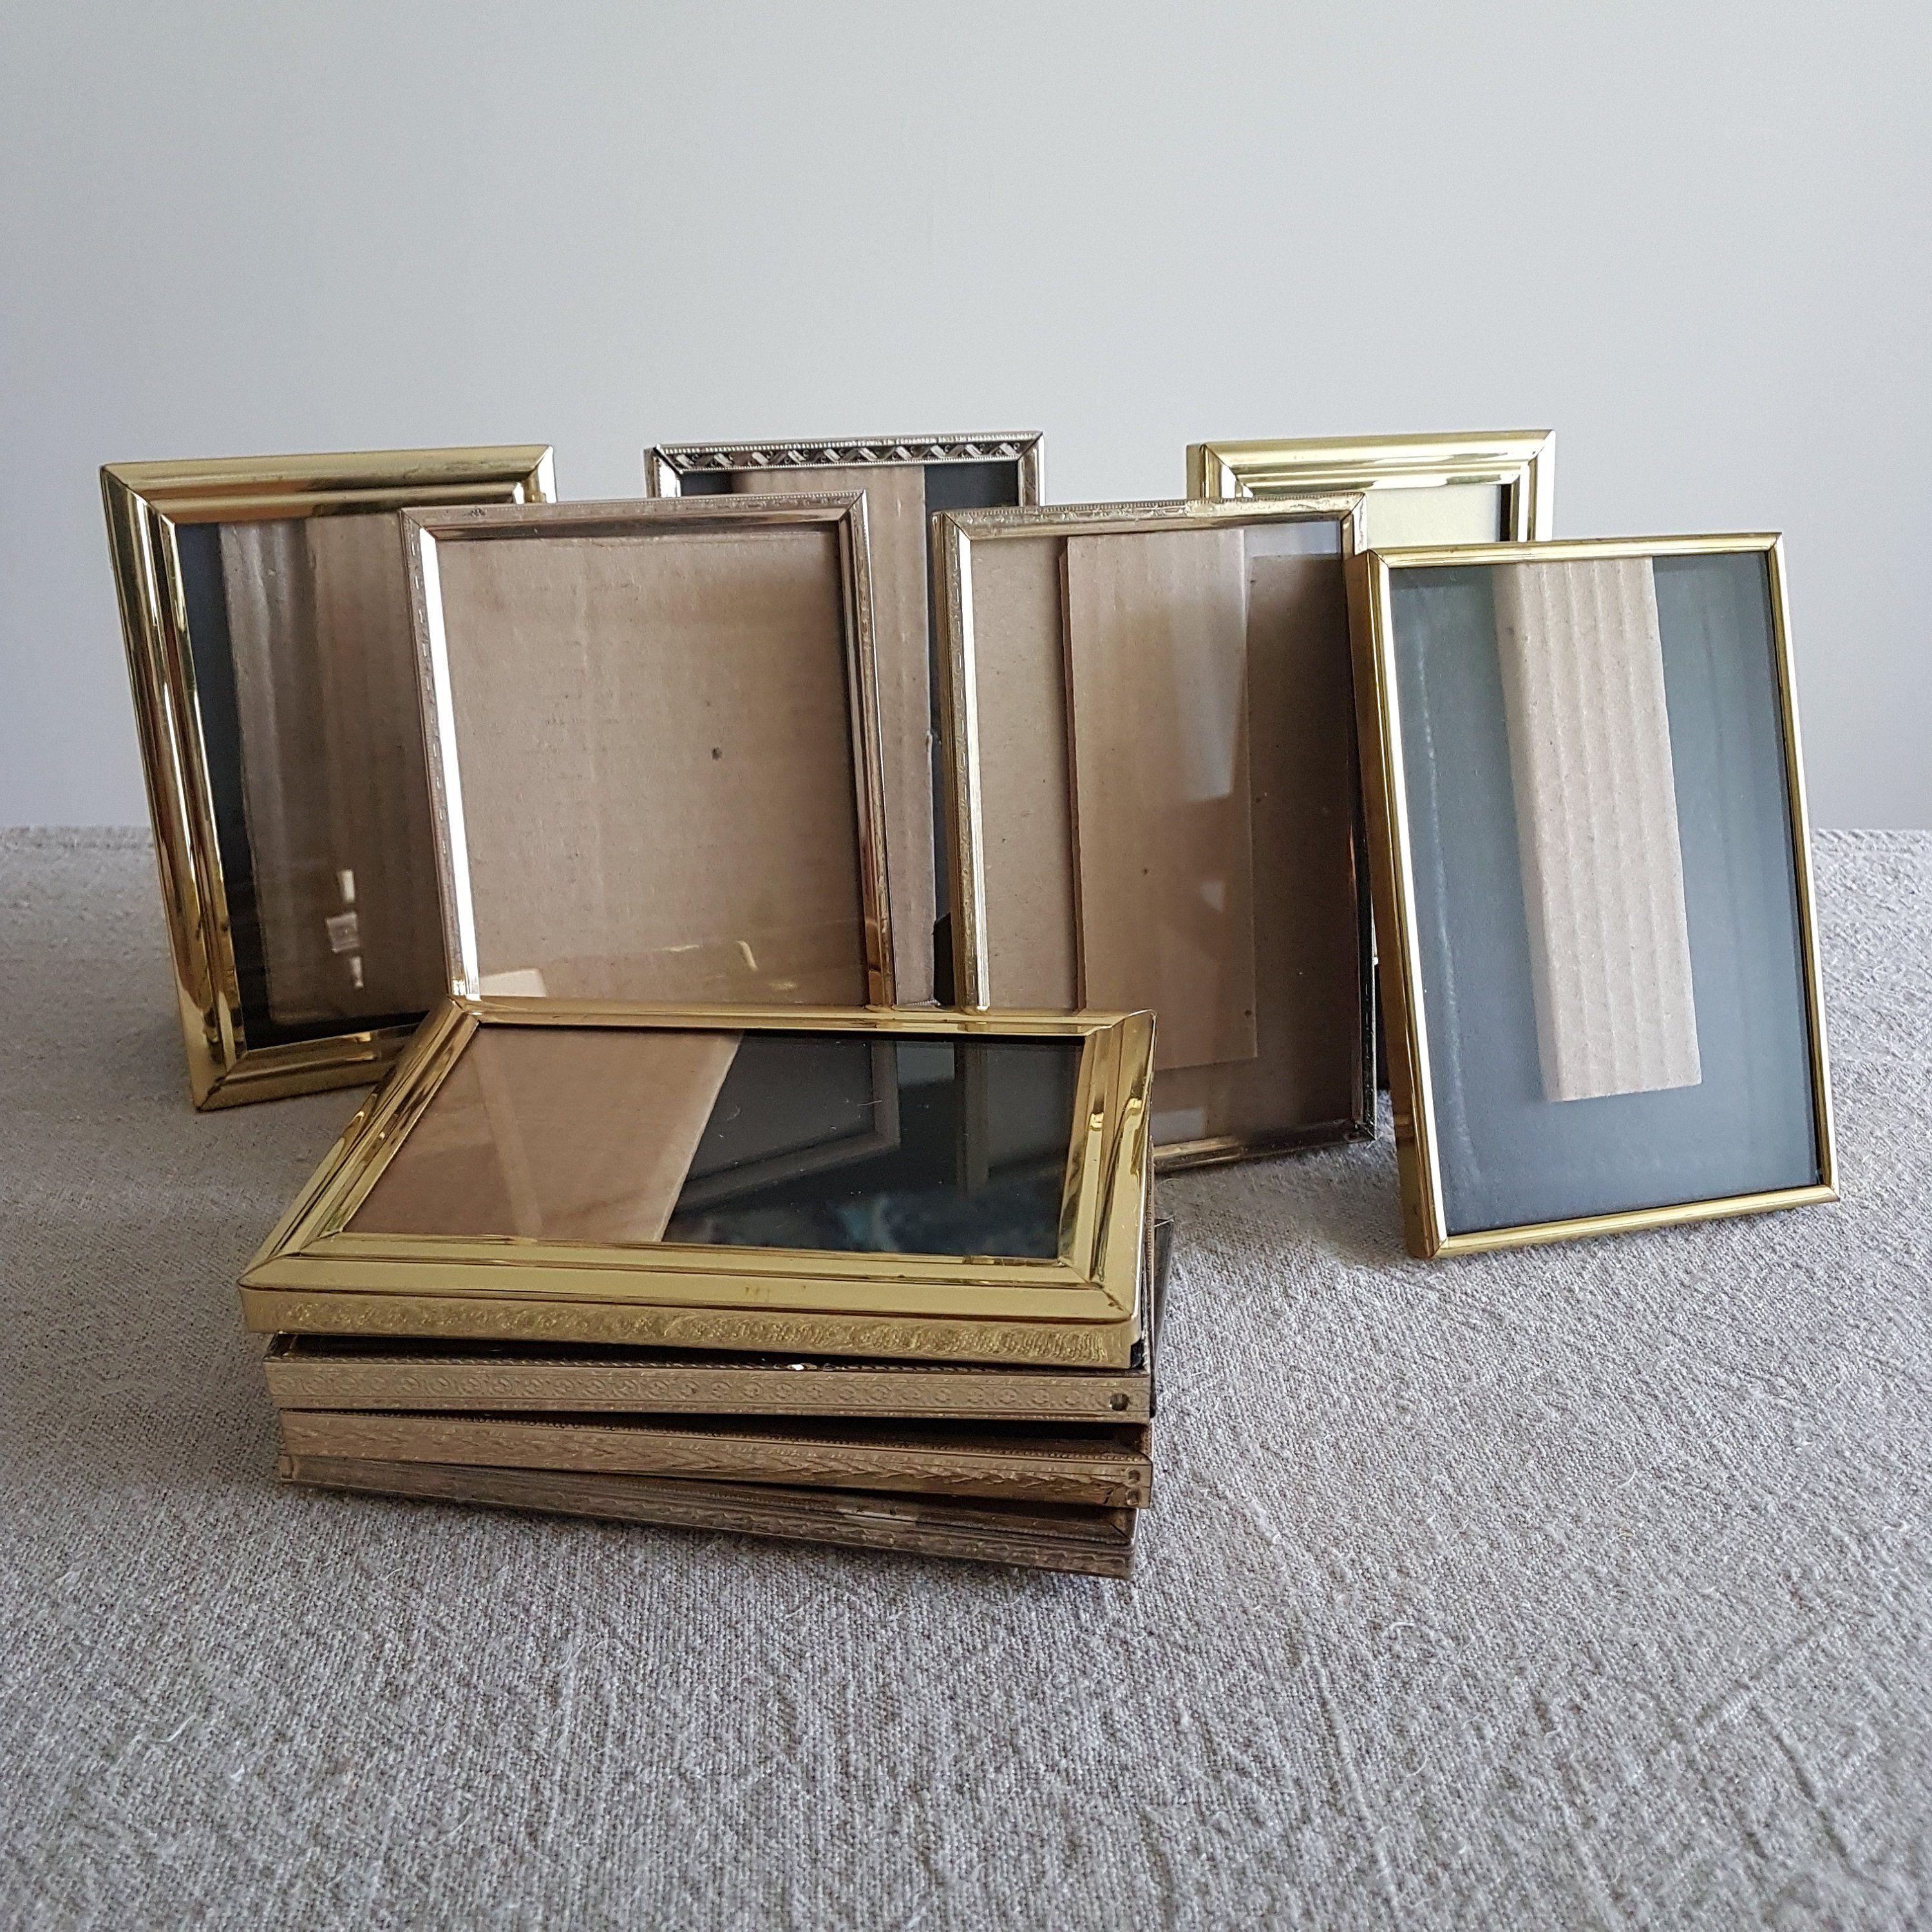 Set Of Ten Shabby 4 X6 Gold Metal Picture Frames Photo Frames Wedding Signs Centerpieces Table Numbers Bulk Frames Supplies 10x15 Cm Metal Picture Frames Photo Wall Gallery Vintage Frames